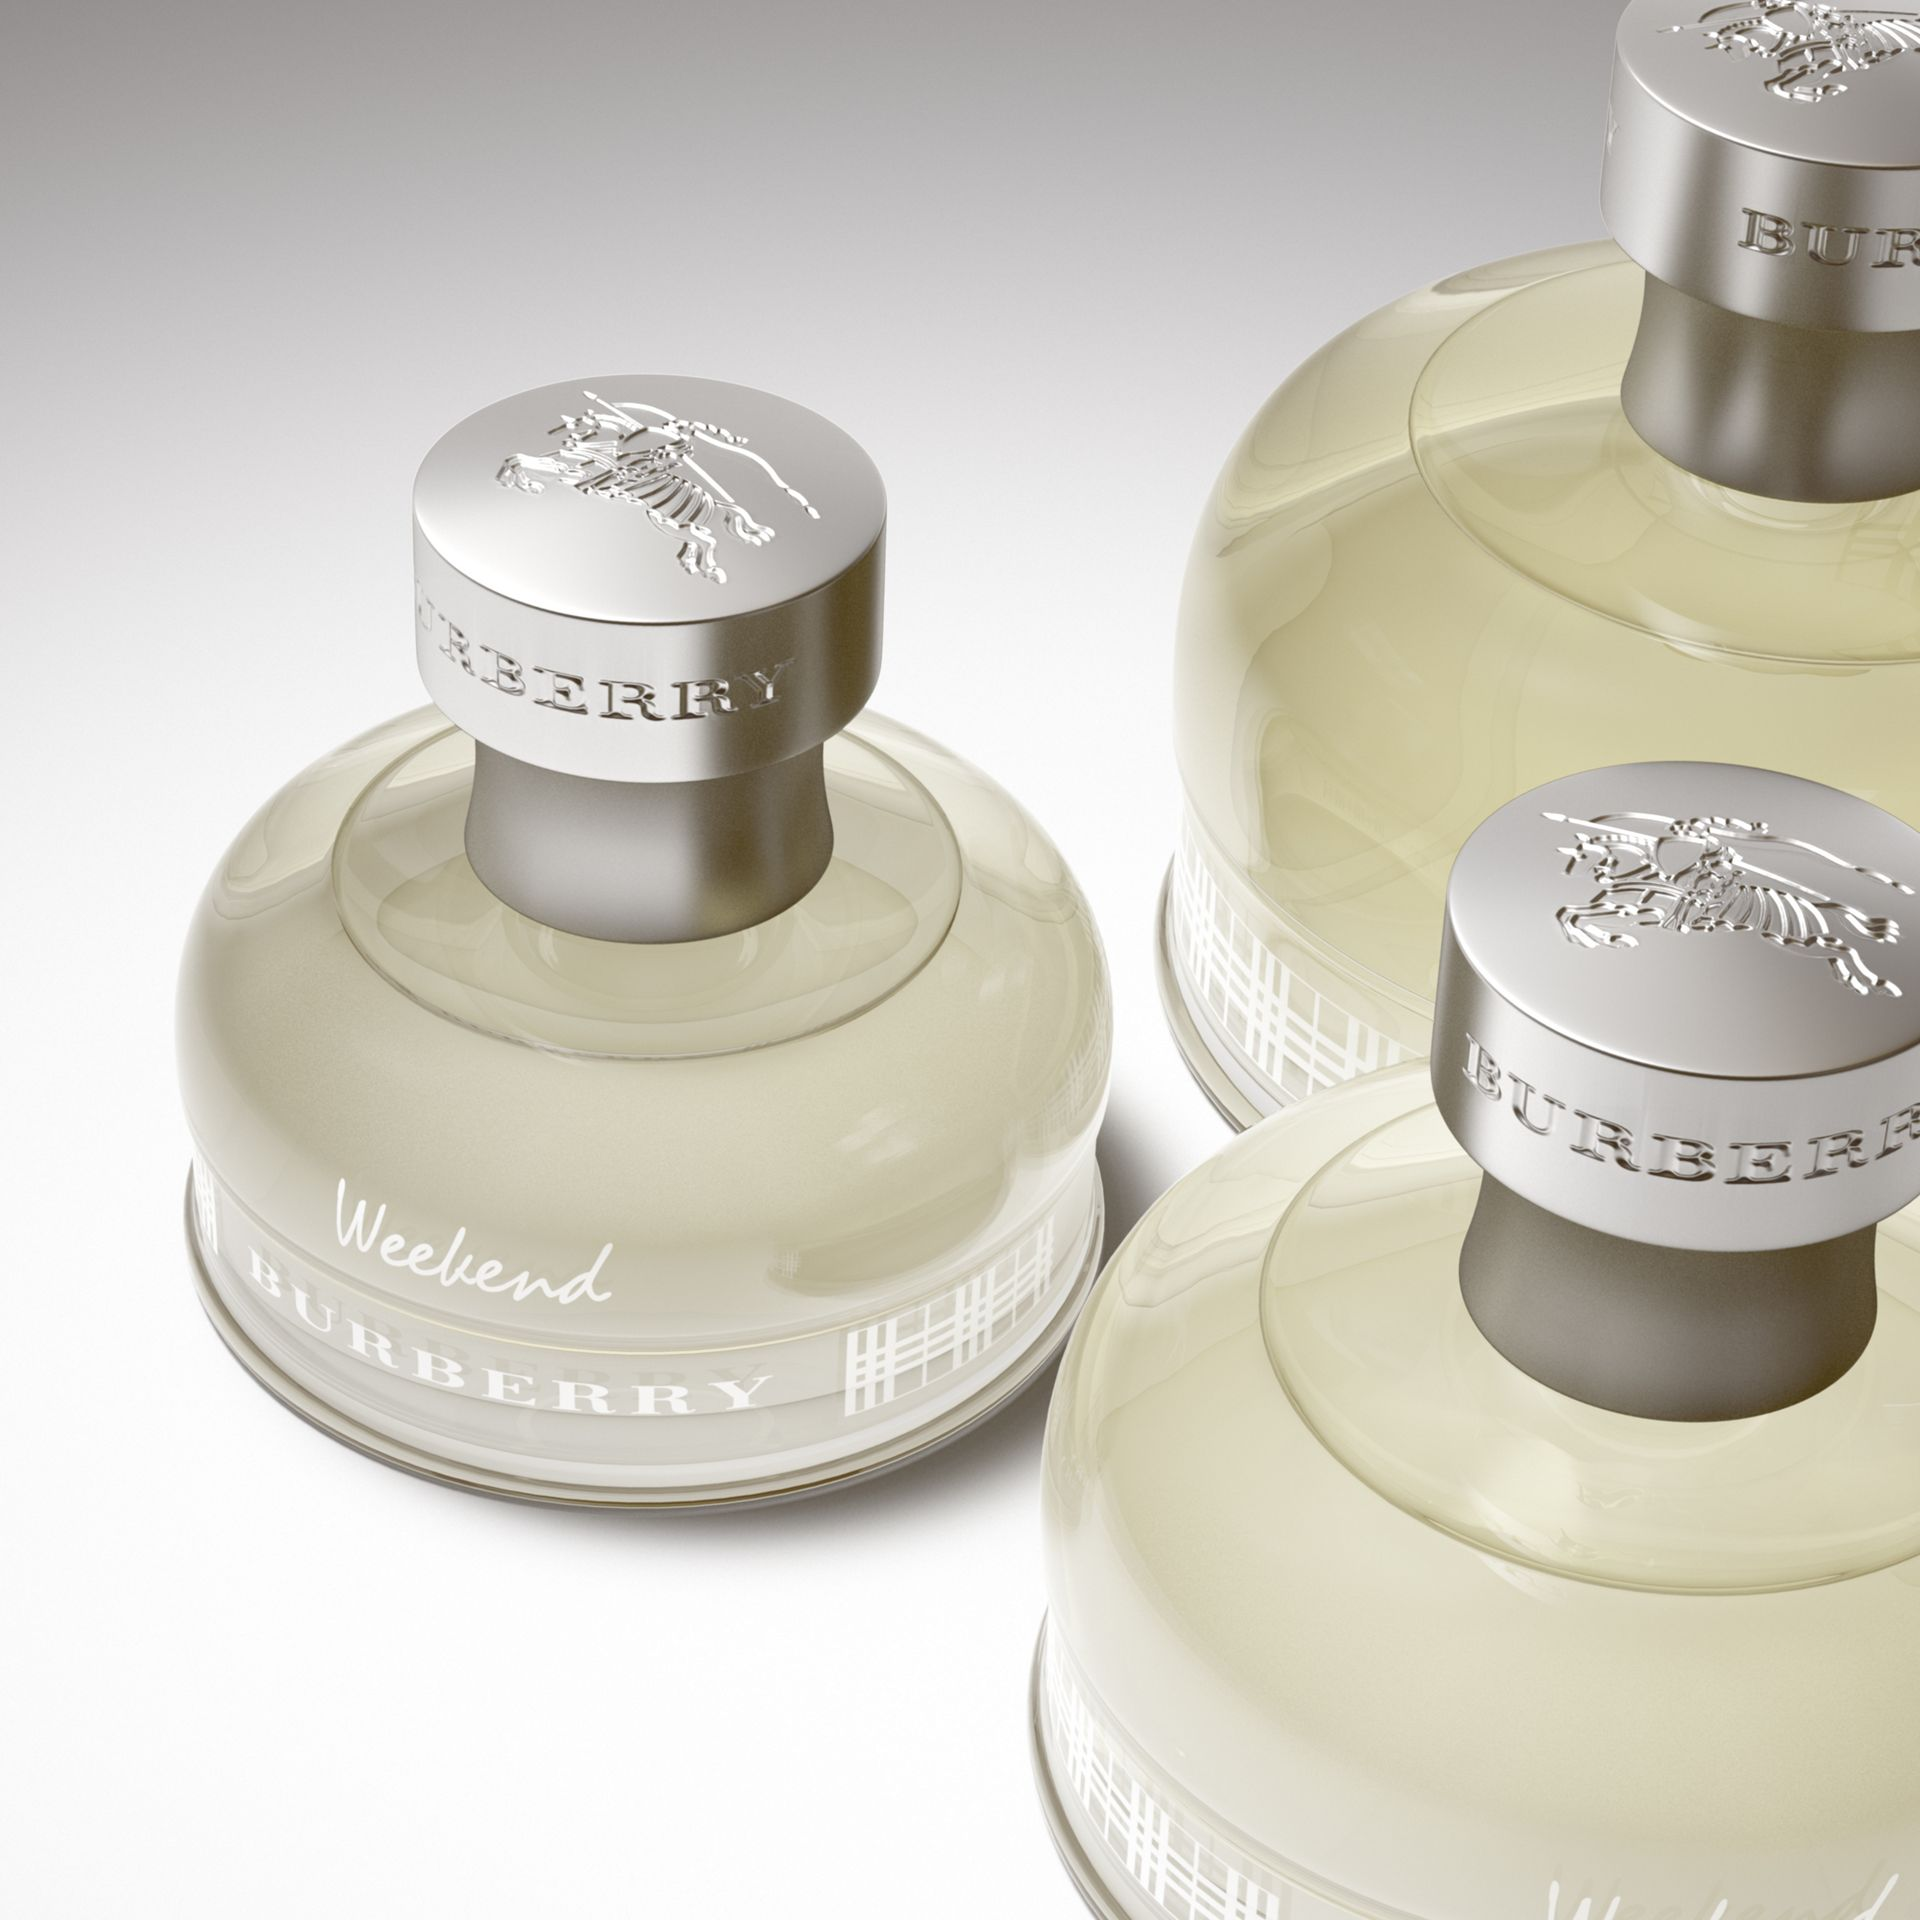 Burberry Weekend For Women Eau De Parfum 30ml - Women | Burberry - gallery image 2